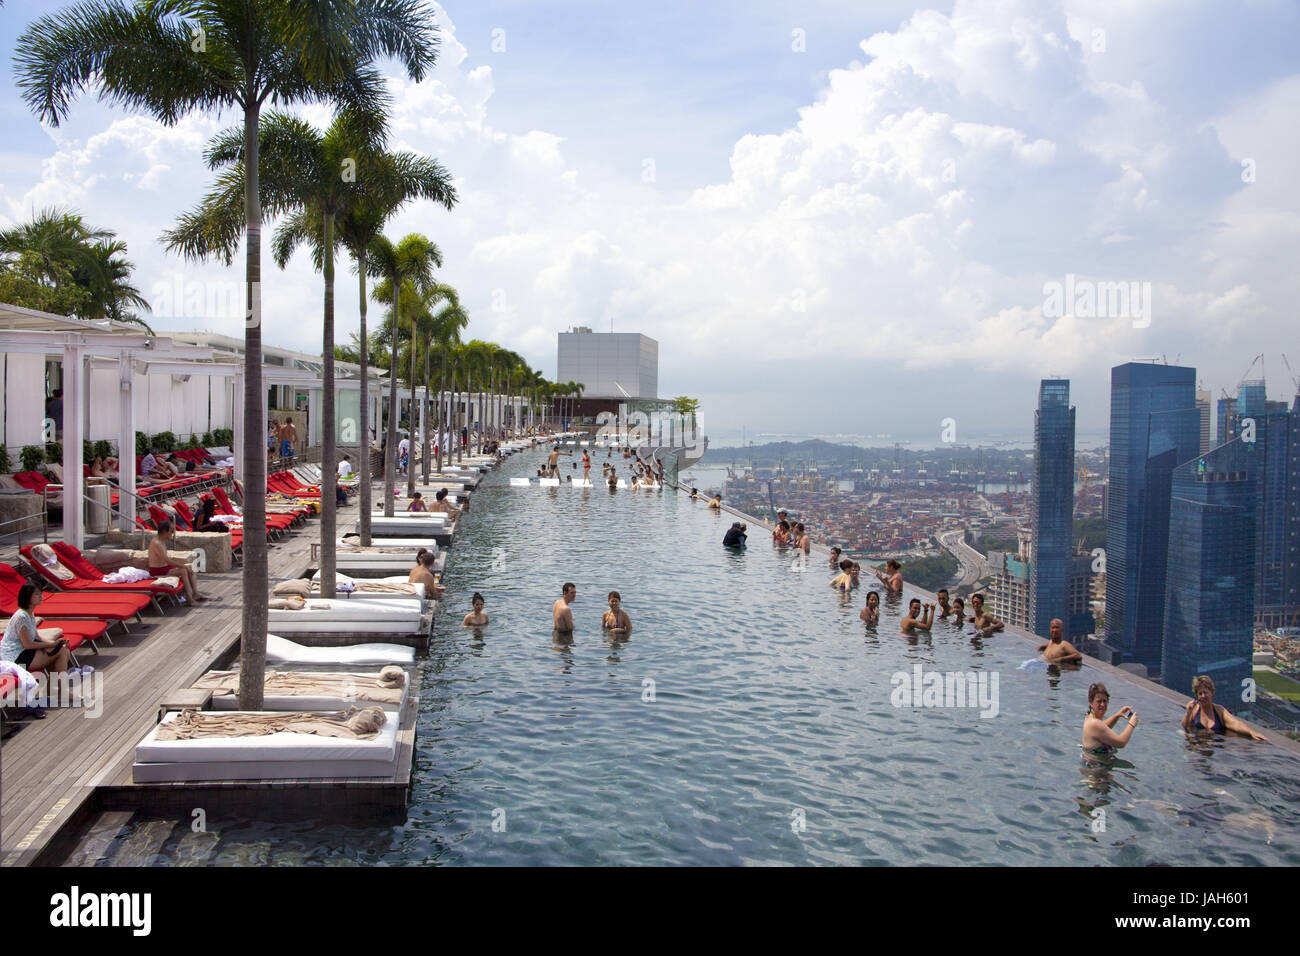 Singapore Hotel 39 Marina Bay Sands 39 Roof Terrace Swimming Stock Photo 144207393 Alamy